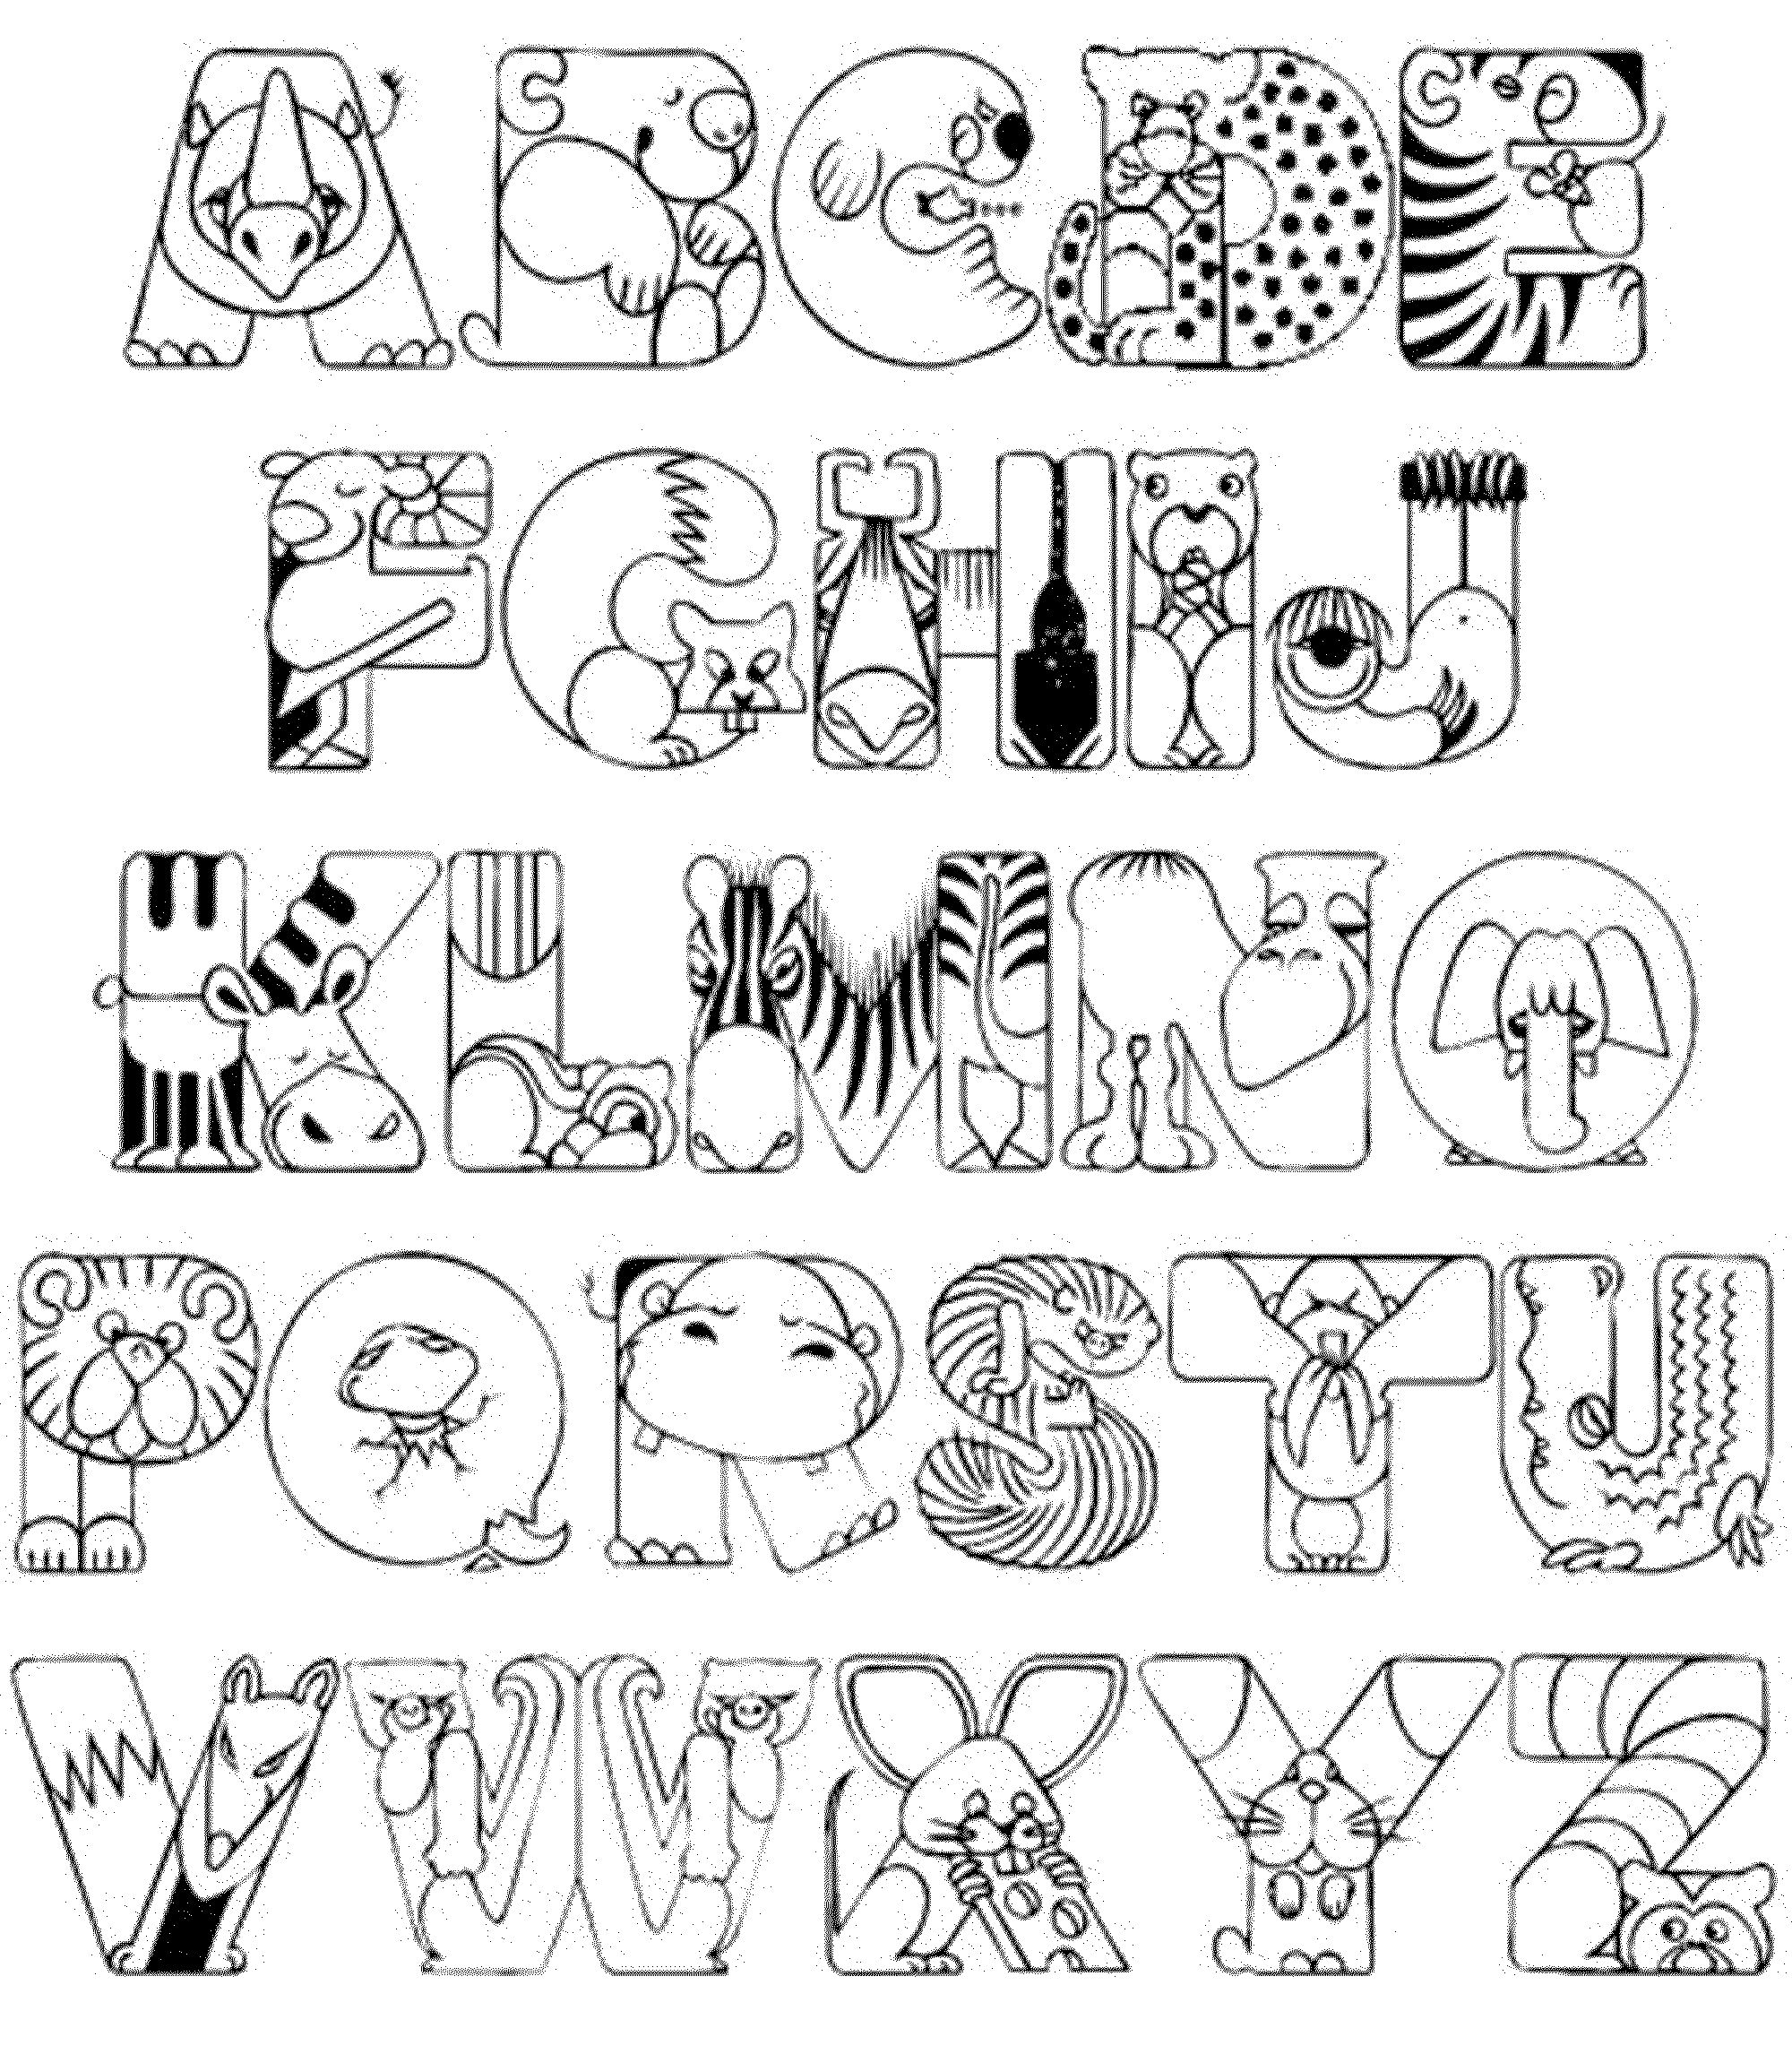 colouring letters a to z a z alphabet coloring pages download and print for free letters z to colouring a